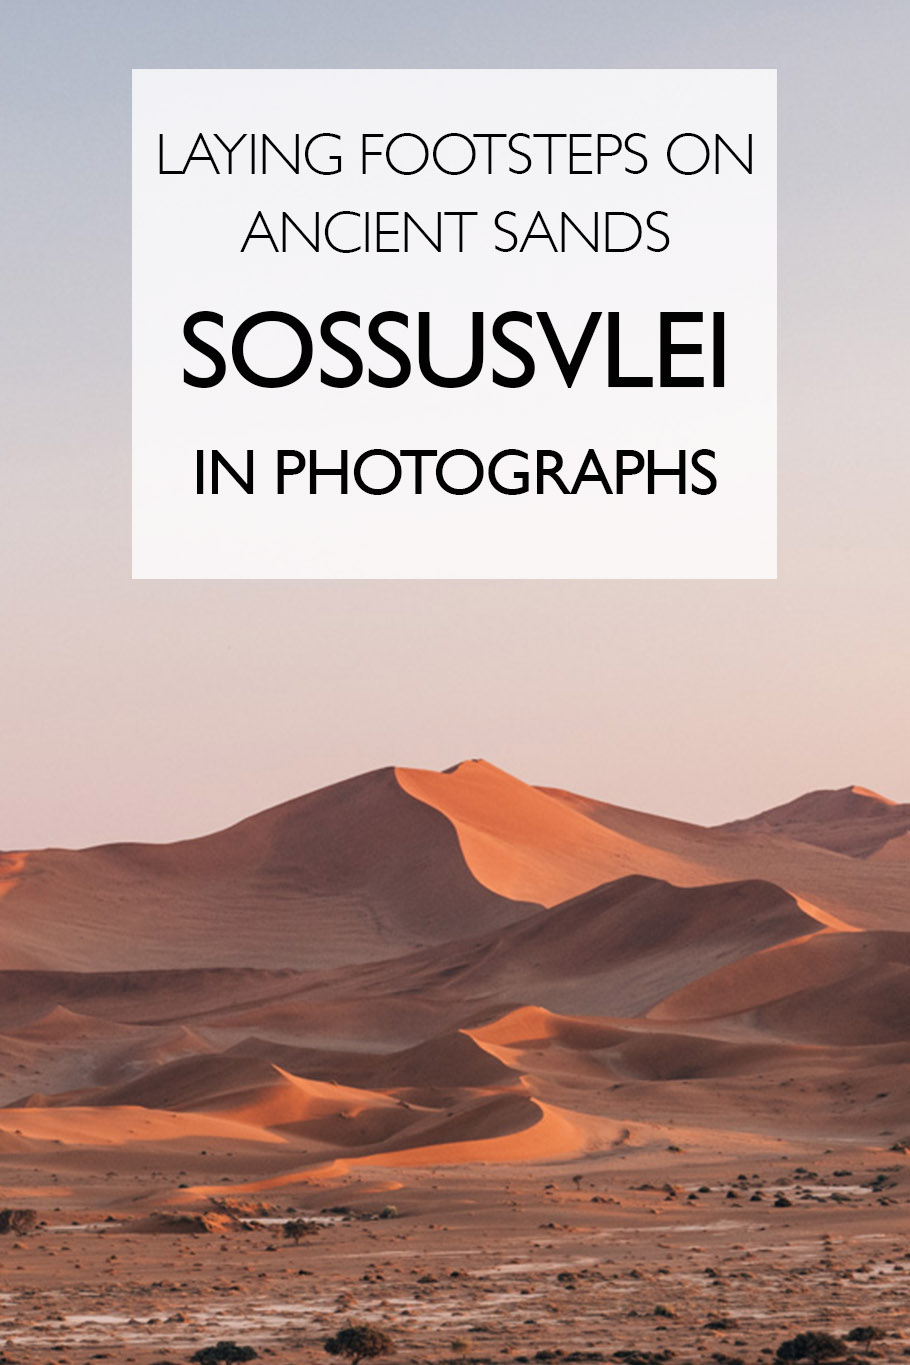 Laying Footsteps on Ancient Sands: Sossusvlei in Photographs